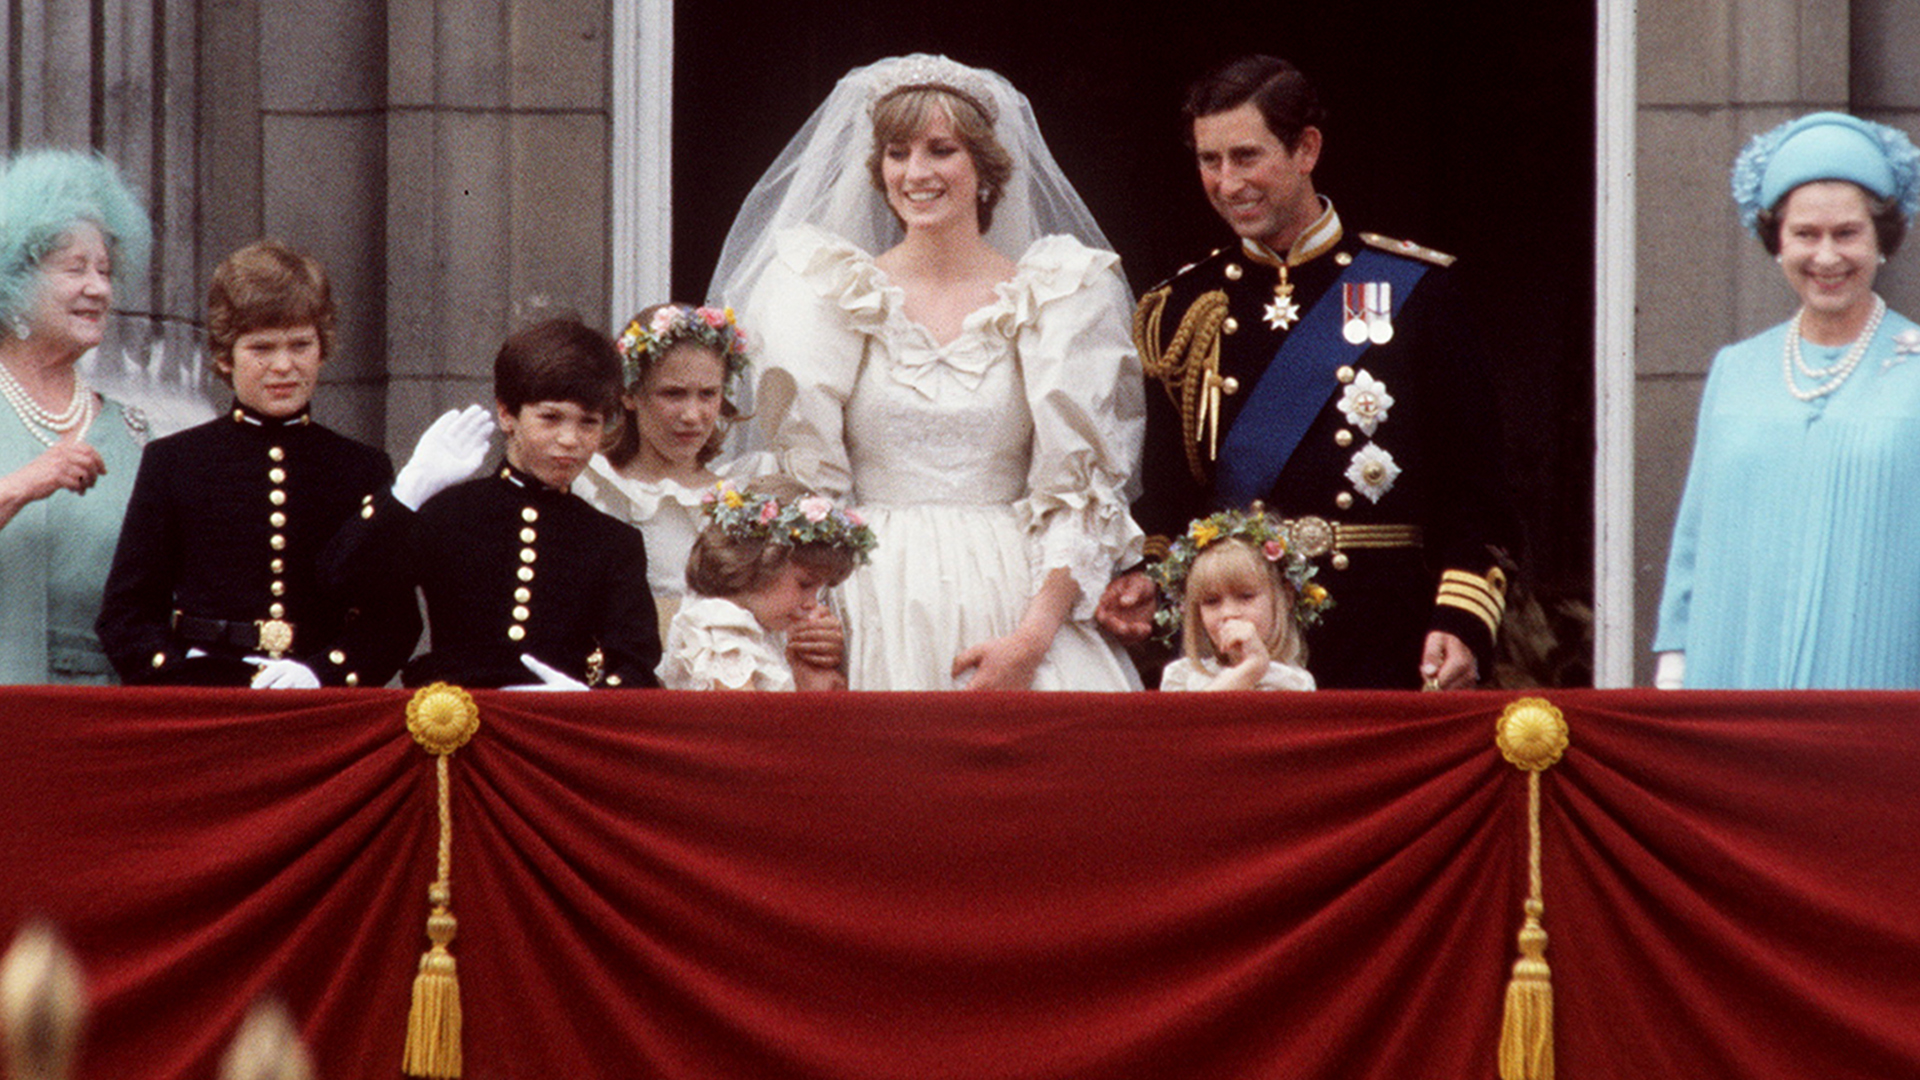 Ð?аÑ?Ñ?инки по запÑ?оÑ?Ñ? princess diana wedding